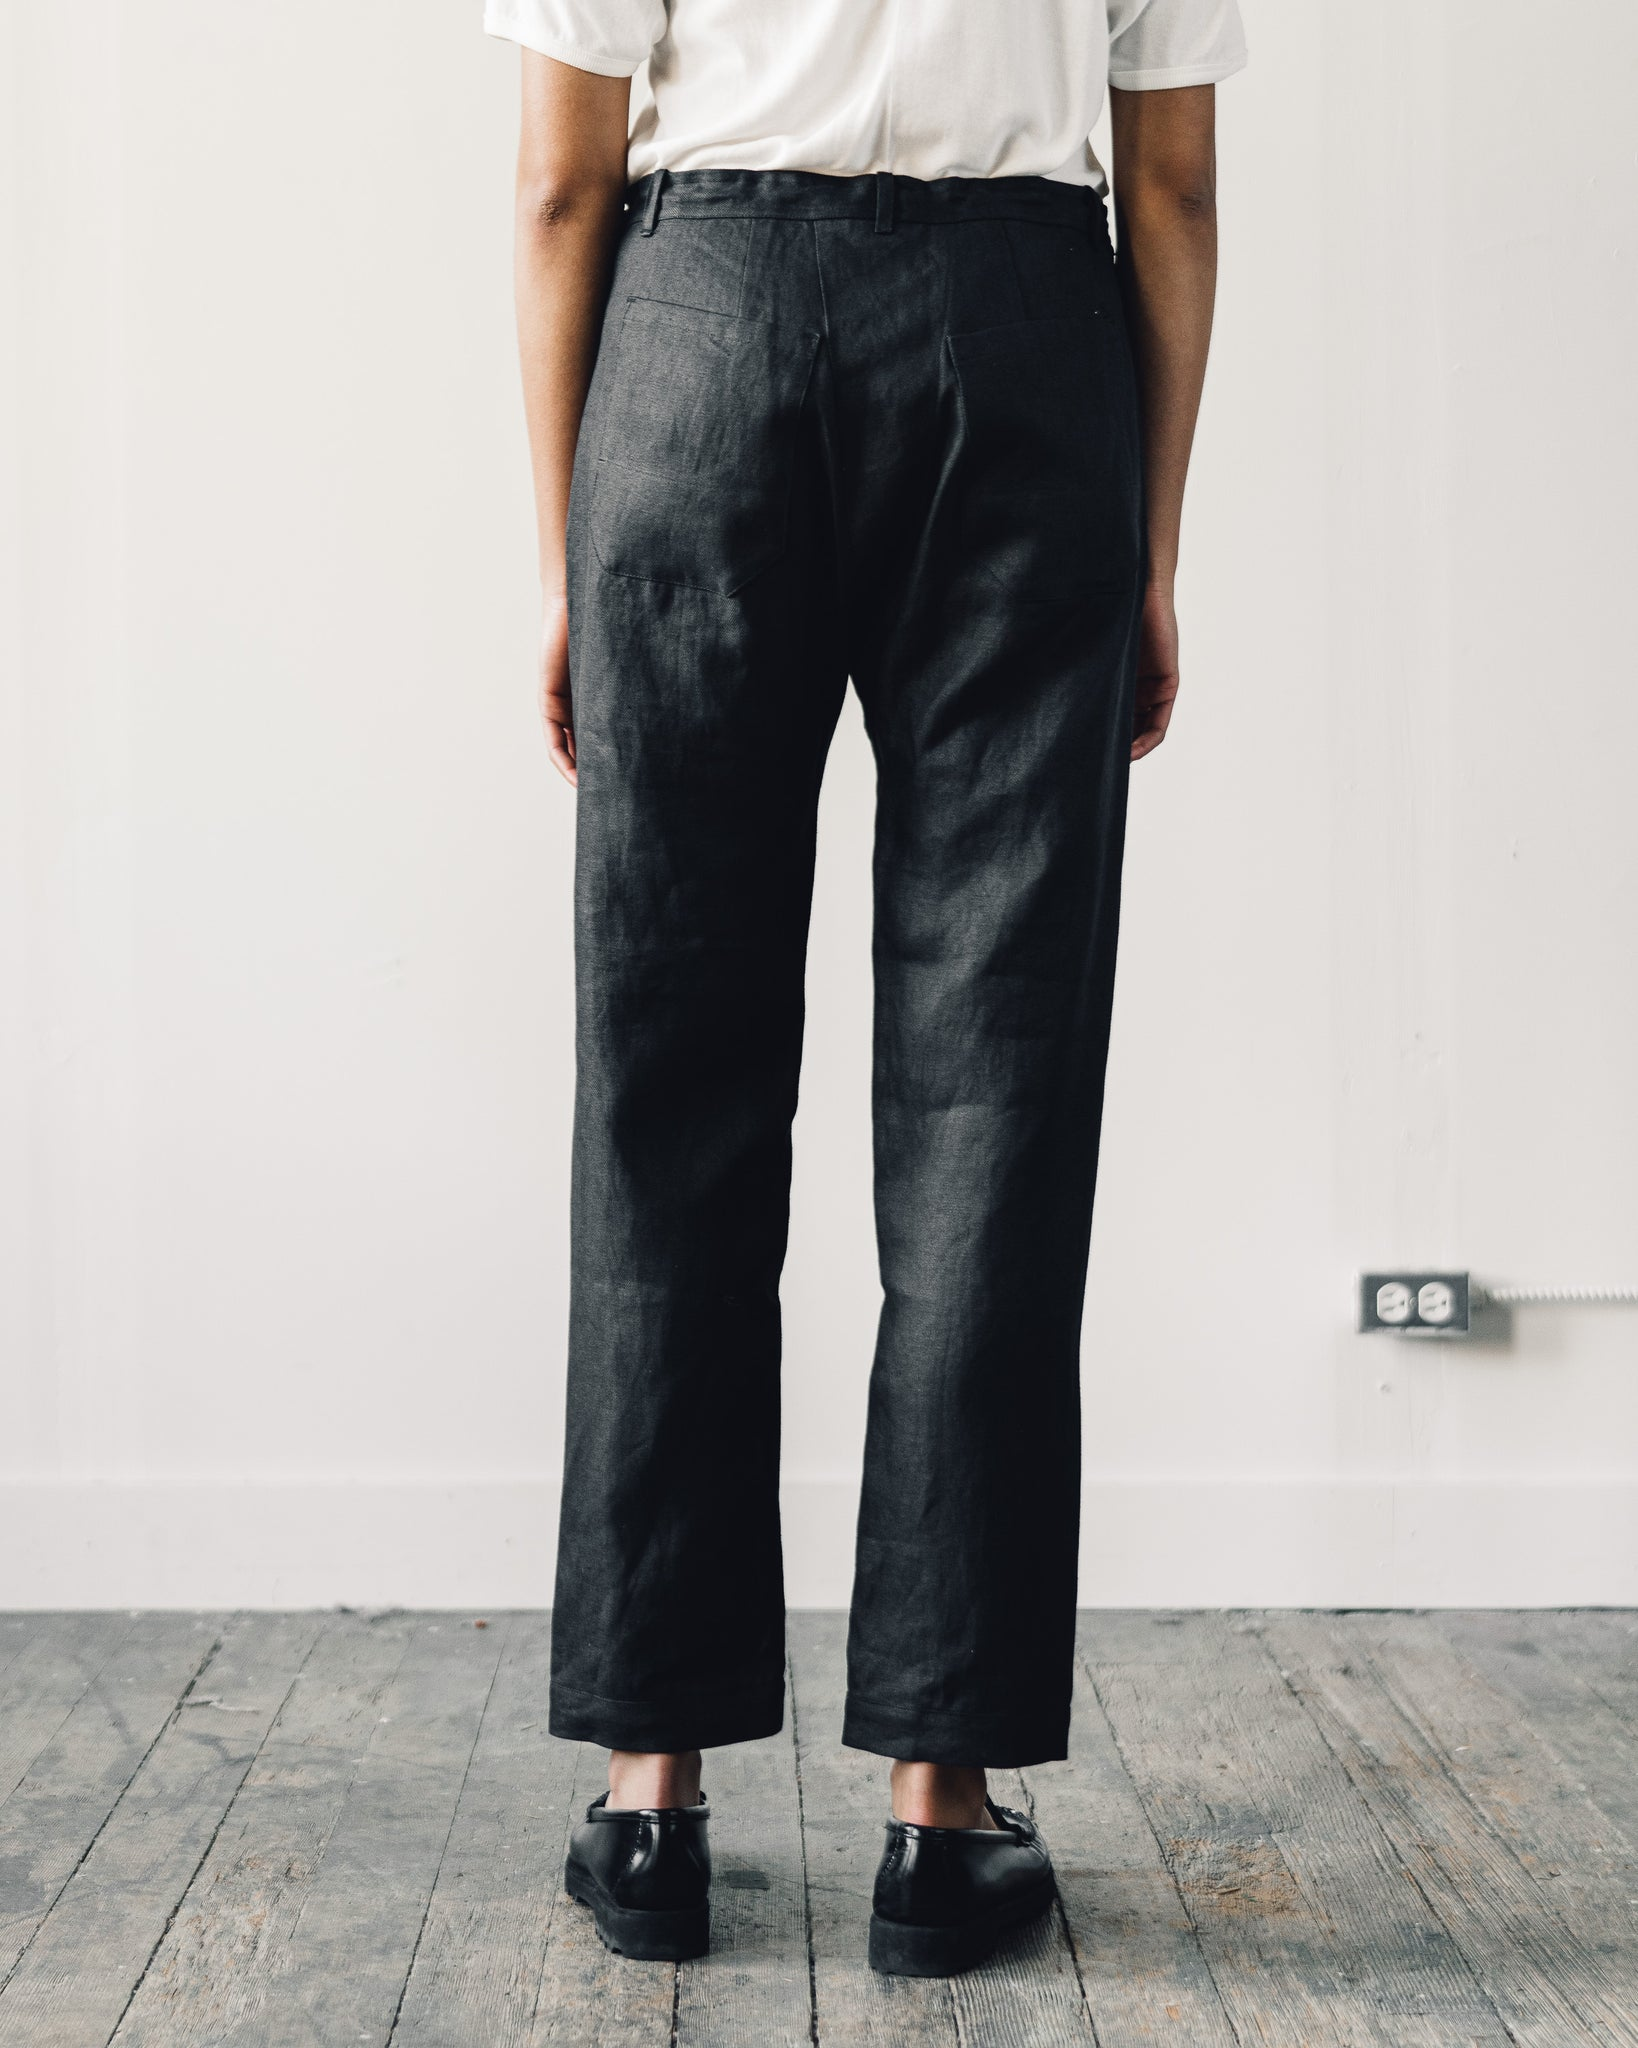 Jan-Jan Van Essche Trouser #49, Black Hemp